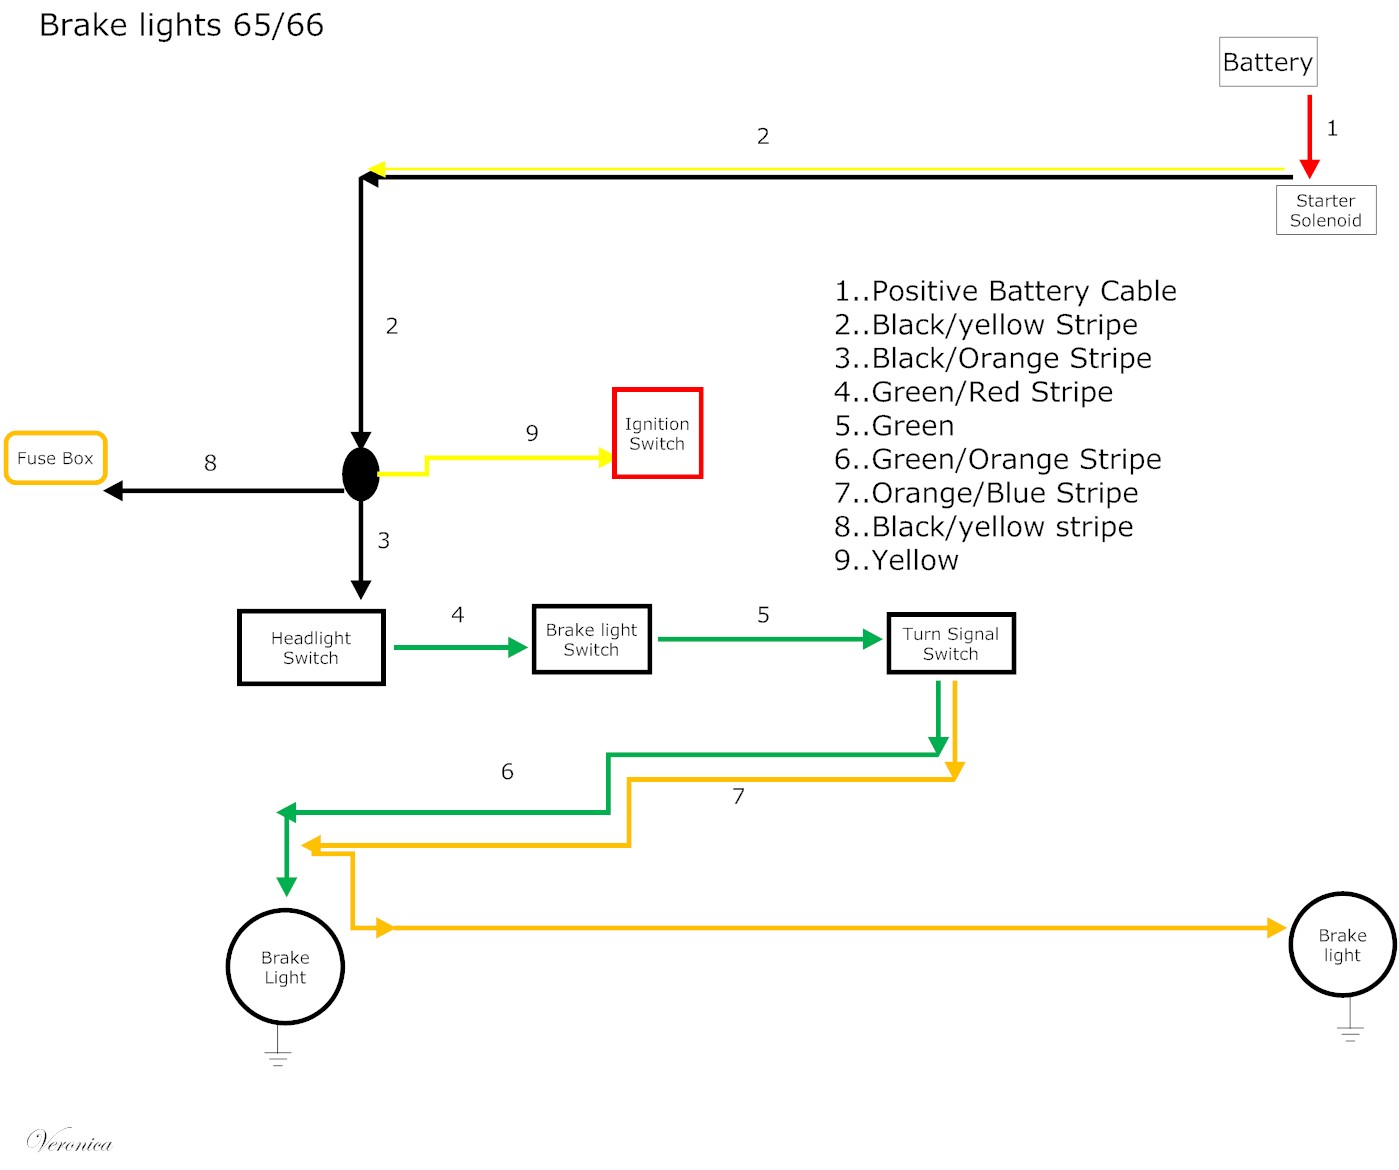 Bmw 325i Starter Relay Location Of For 08 328i Engine Diagram Fog Light Wiring Mustang Data Unroutine Co